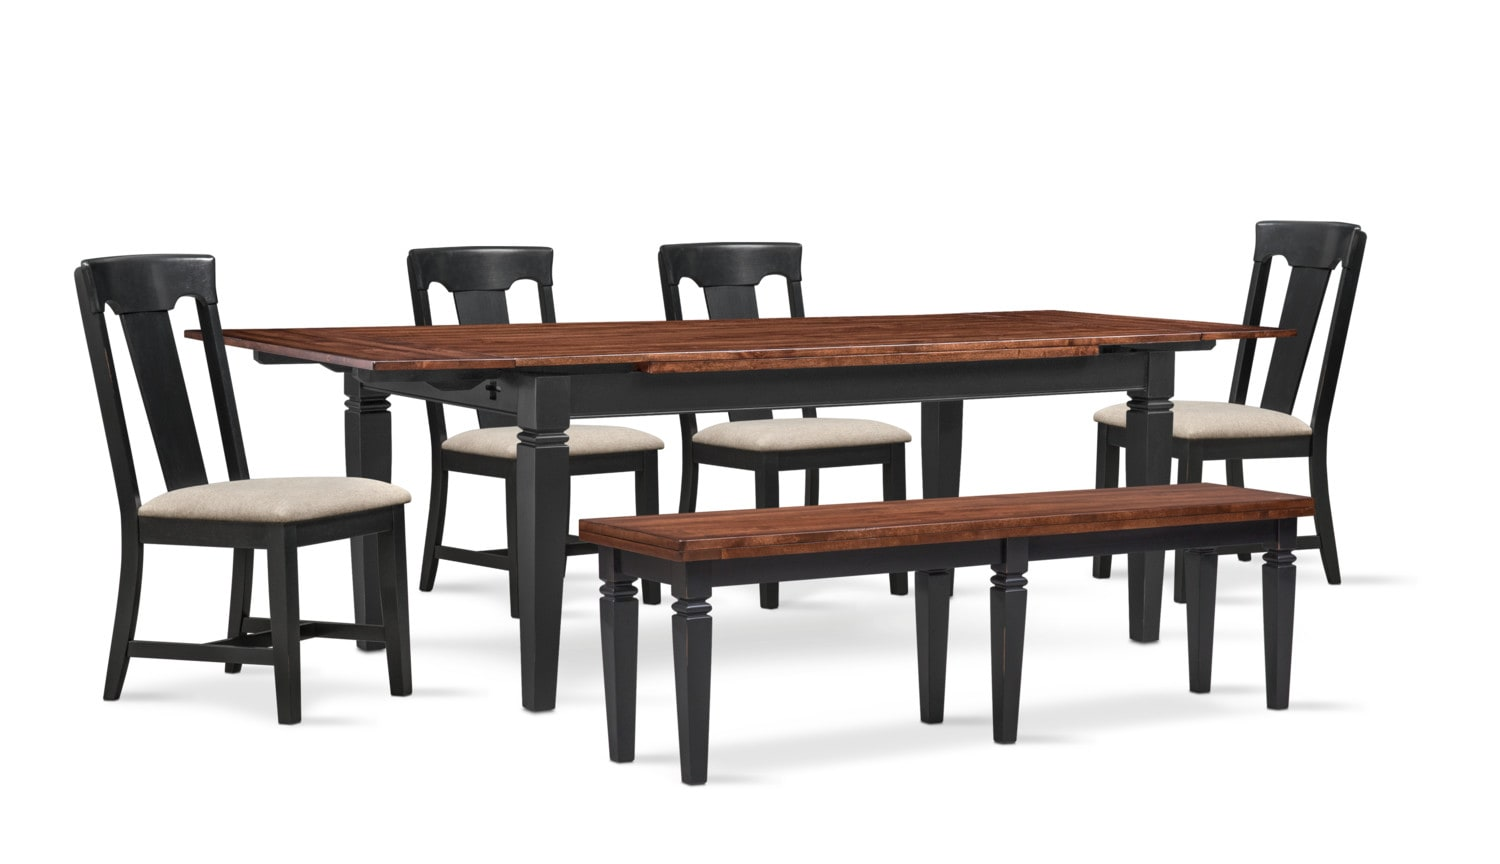 Dining Room Furniture - Adler Dining Table, 4 Side Chairs and Bench